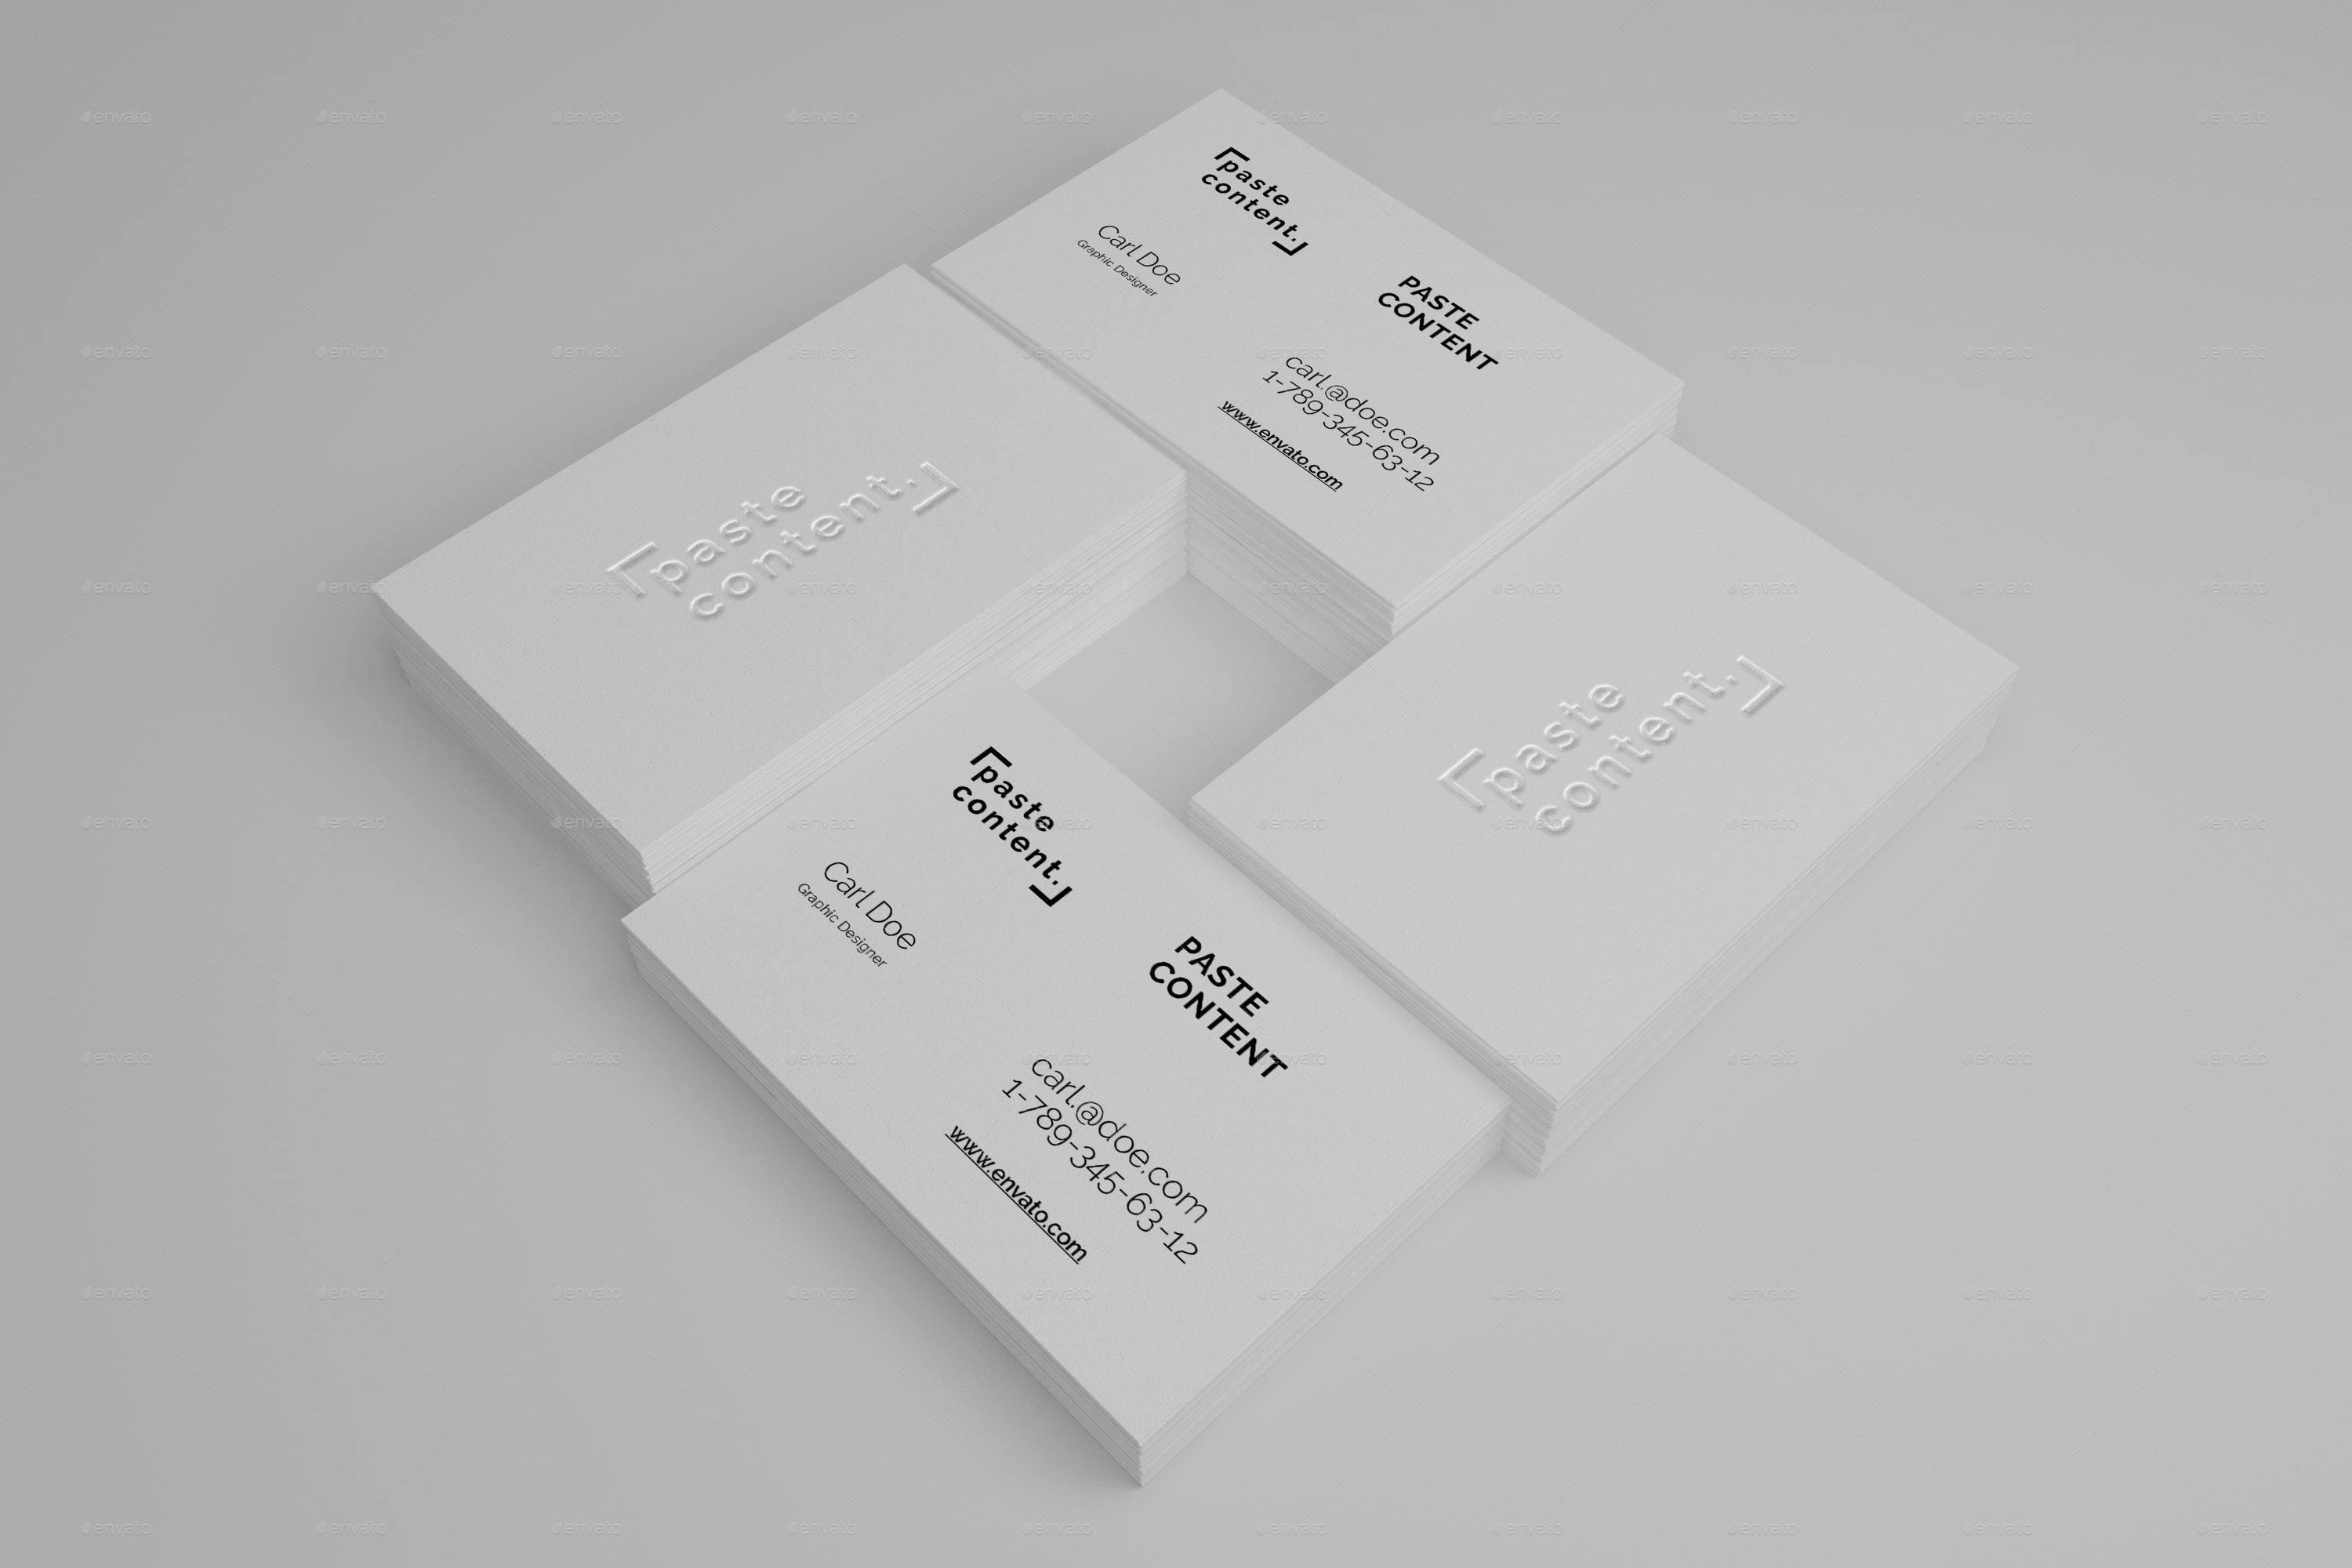 Business cards mock ups big pack vol 1 by ruslansh graphicriver preview1embossed styleg preview1foilg preview1letterpressg preview20g preview20letterpressg preview20embossedg colourmoves